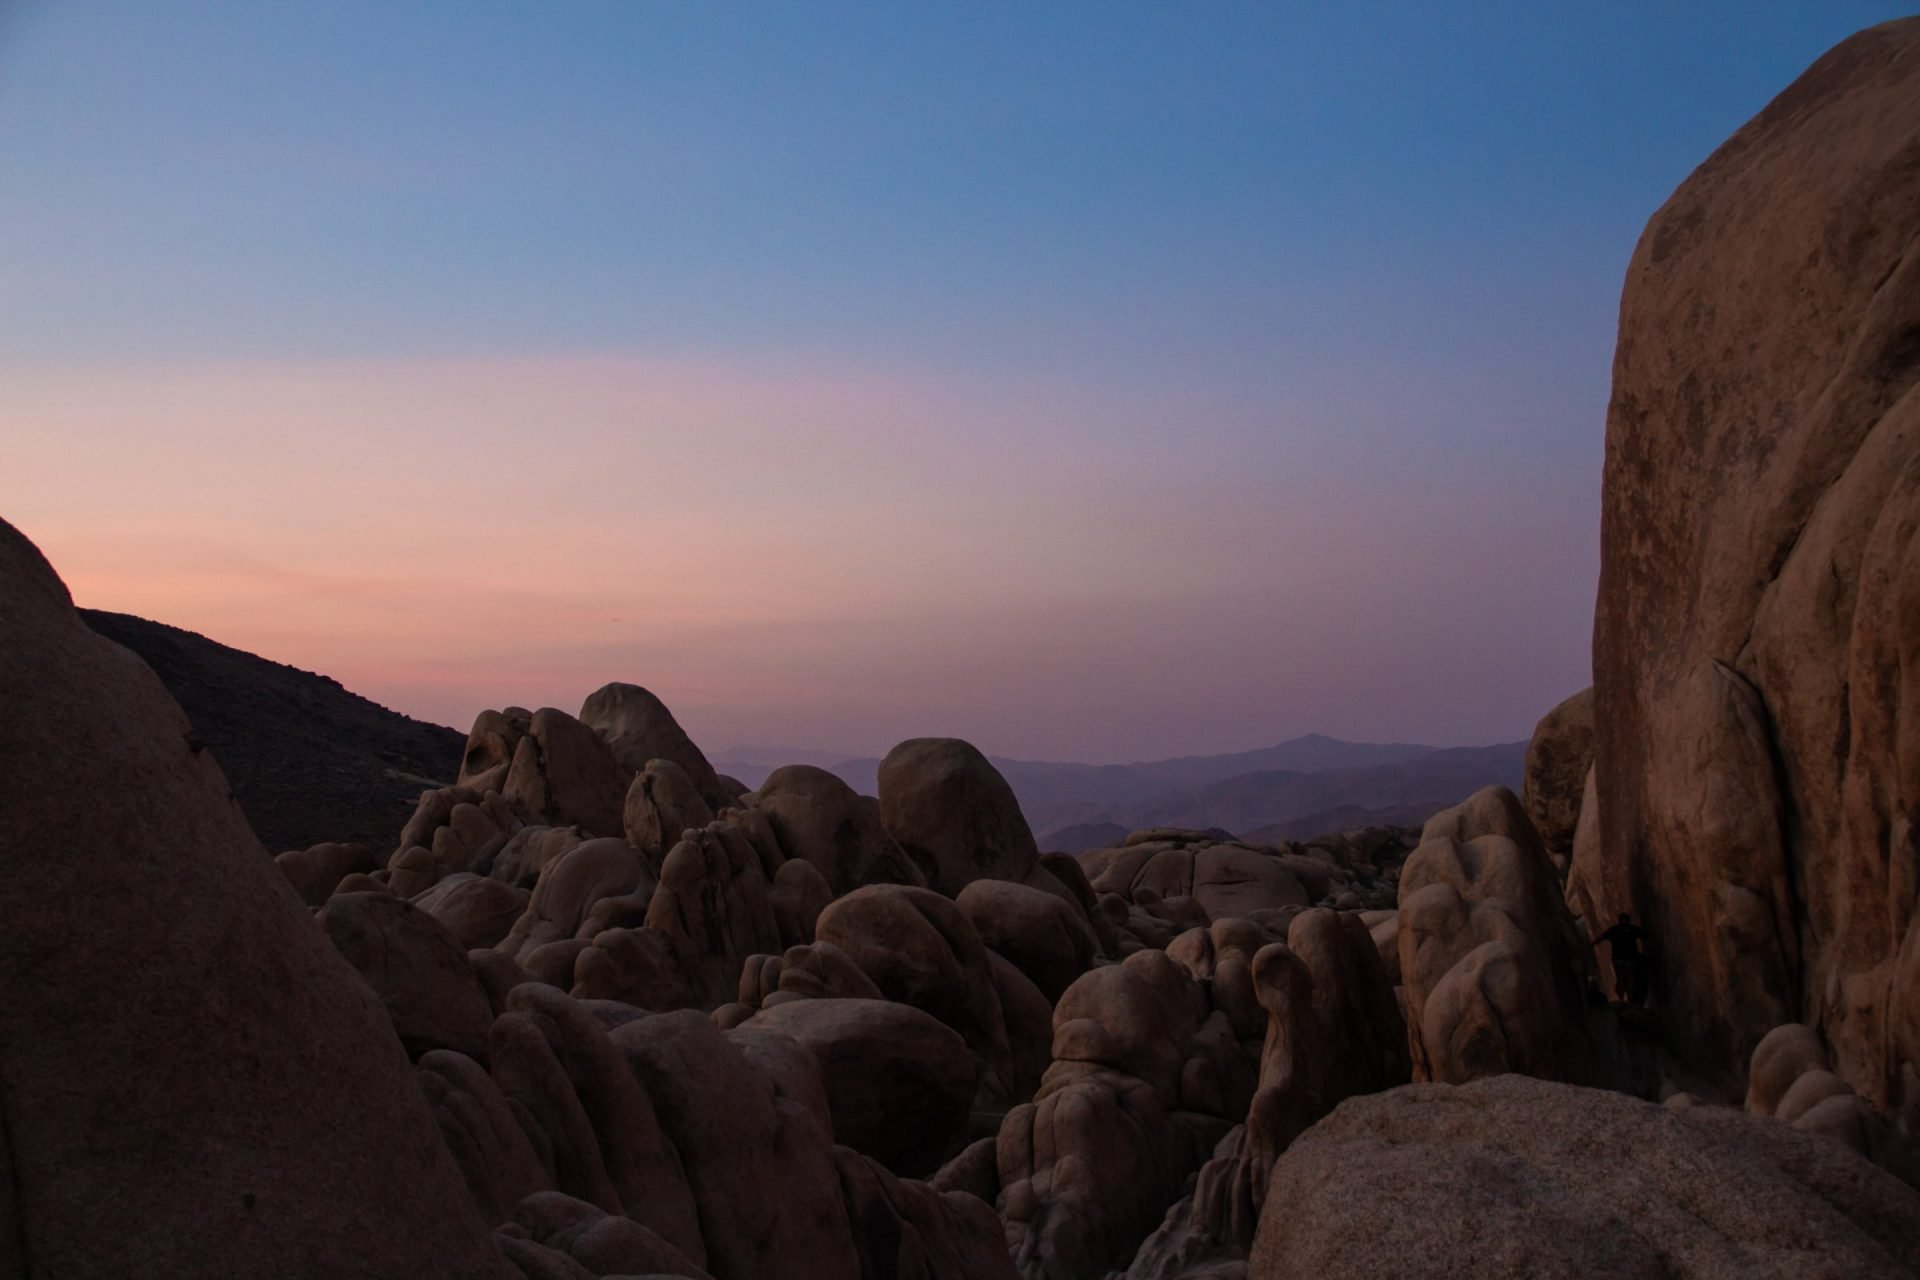 Smooth Rock Formations During Sunset In Joshua Tree Park